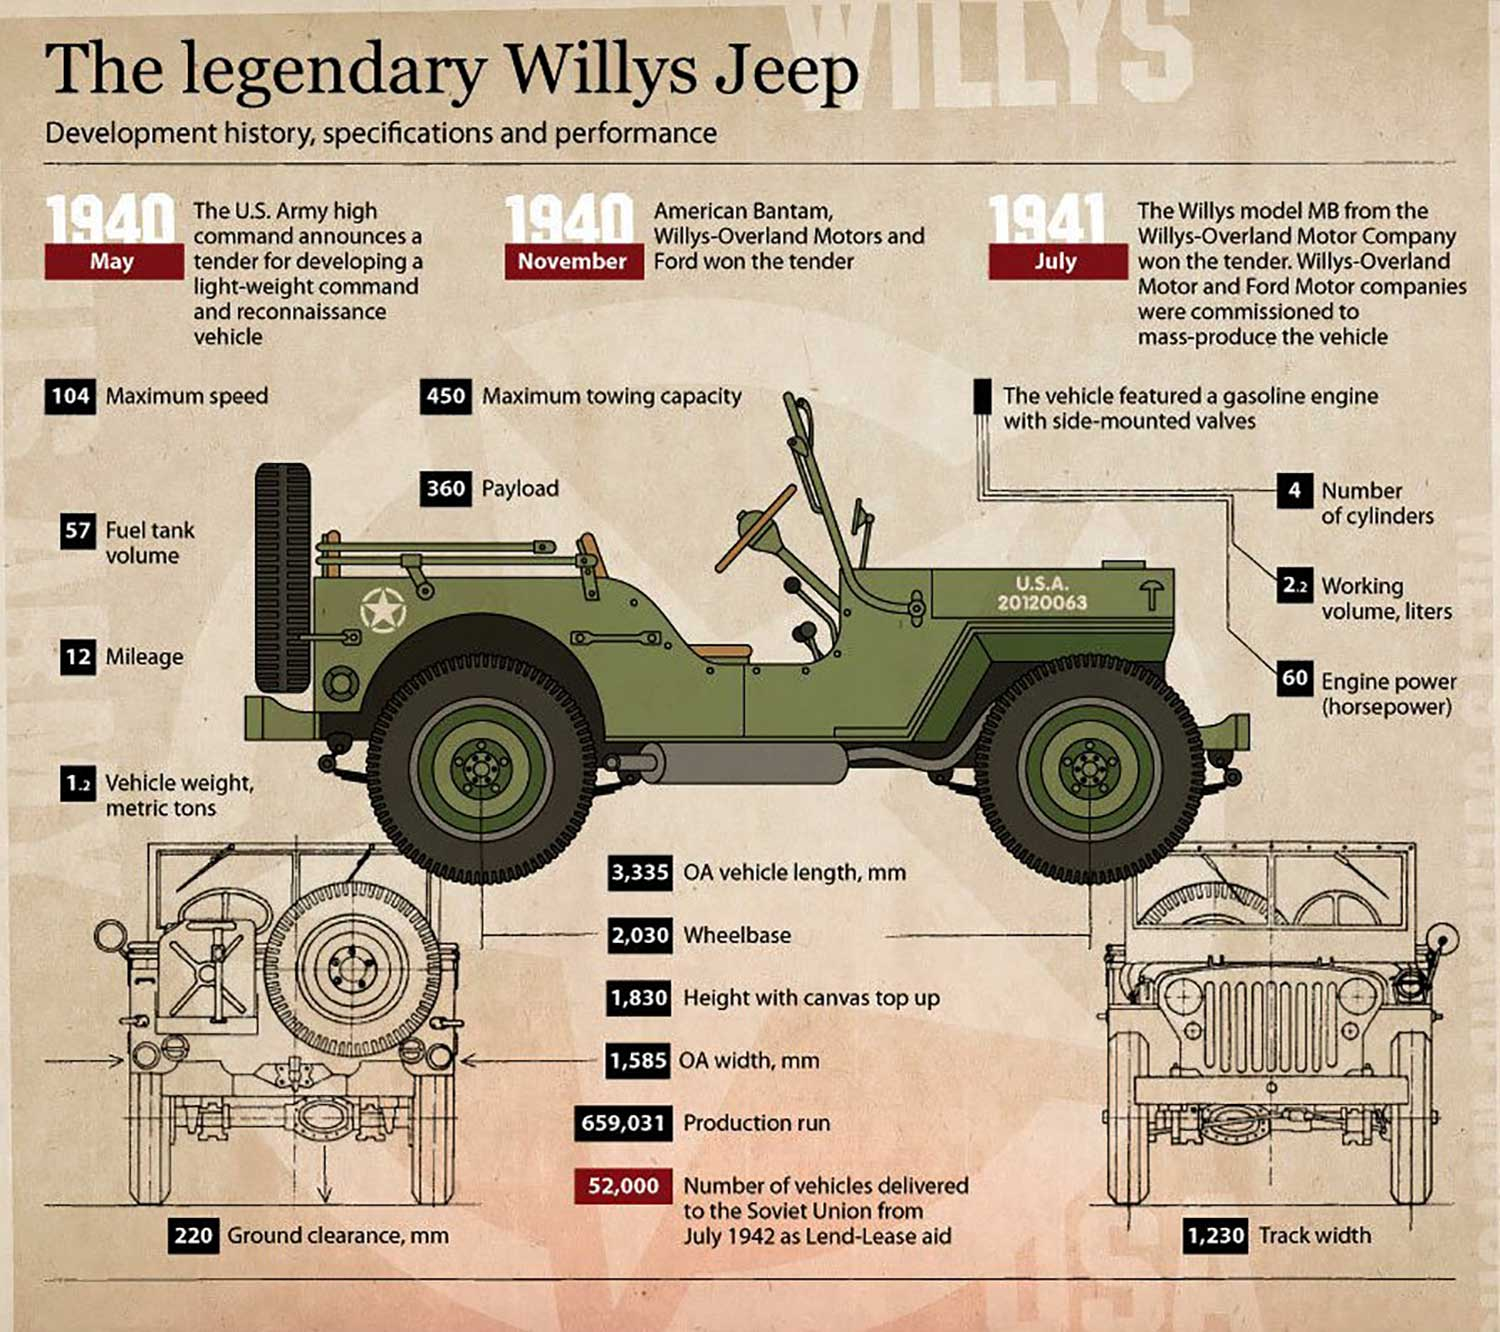 Military Vehicle, Legendary Willys Jeep